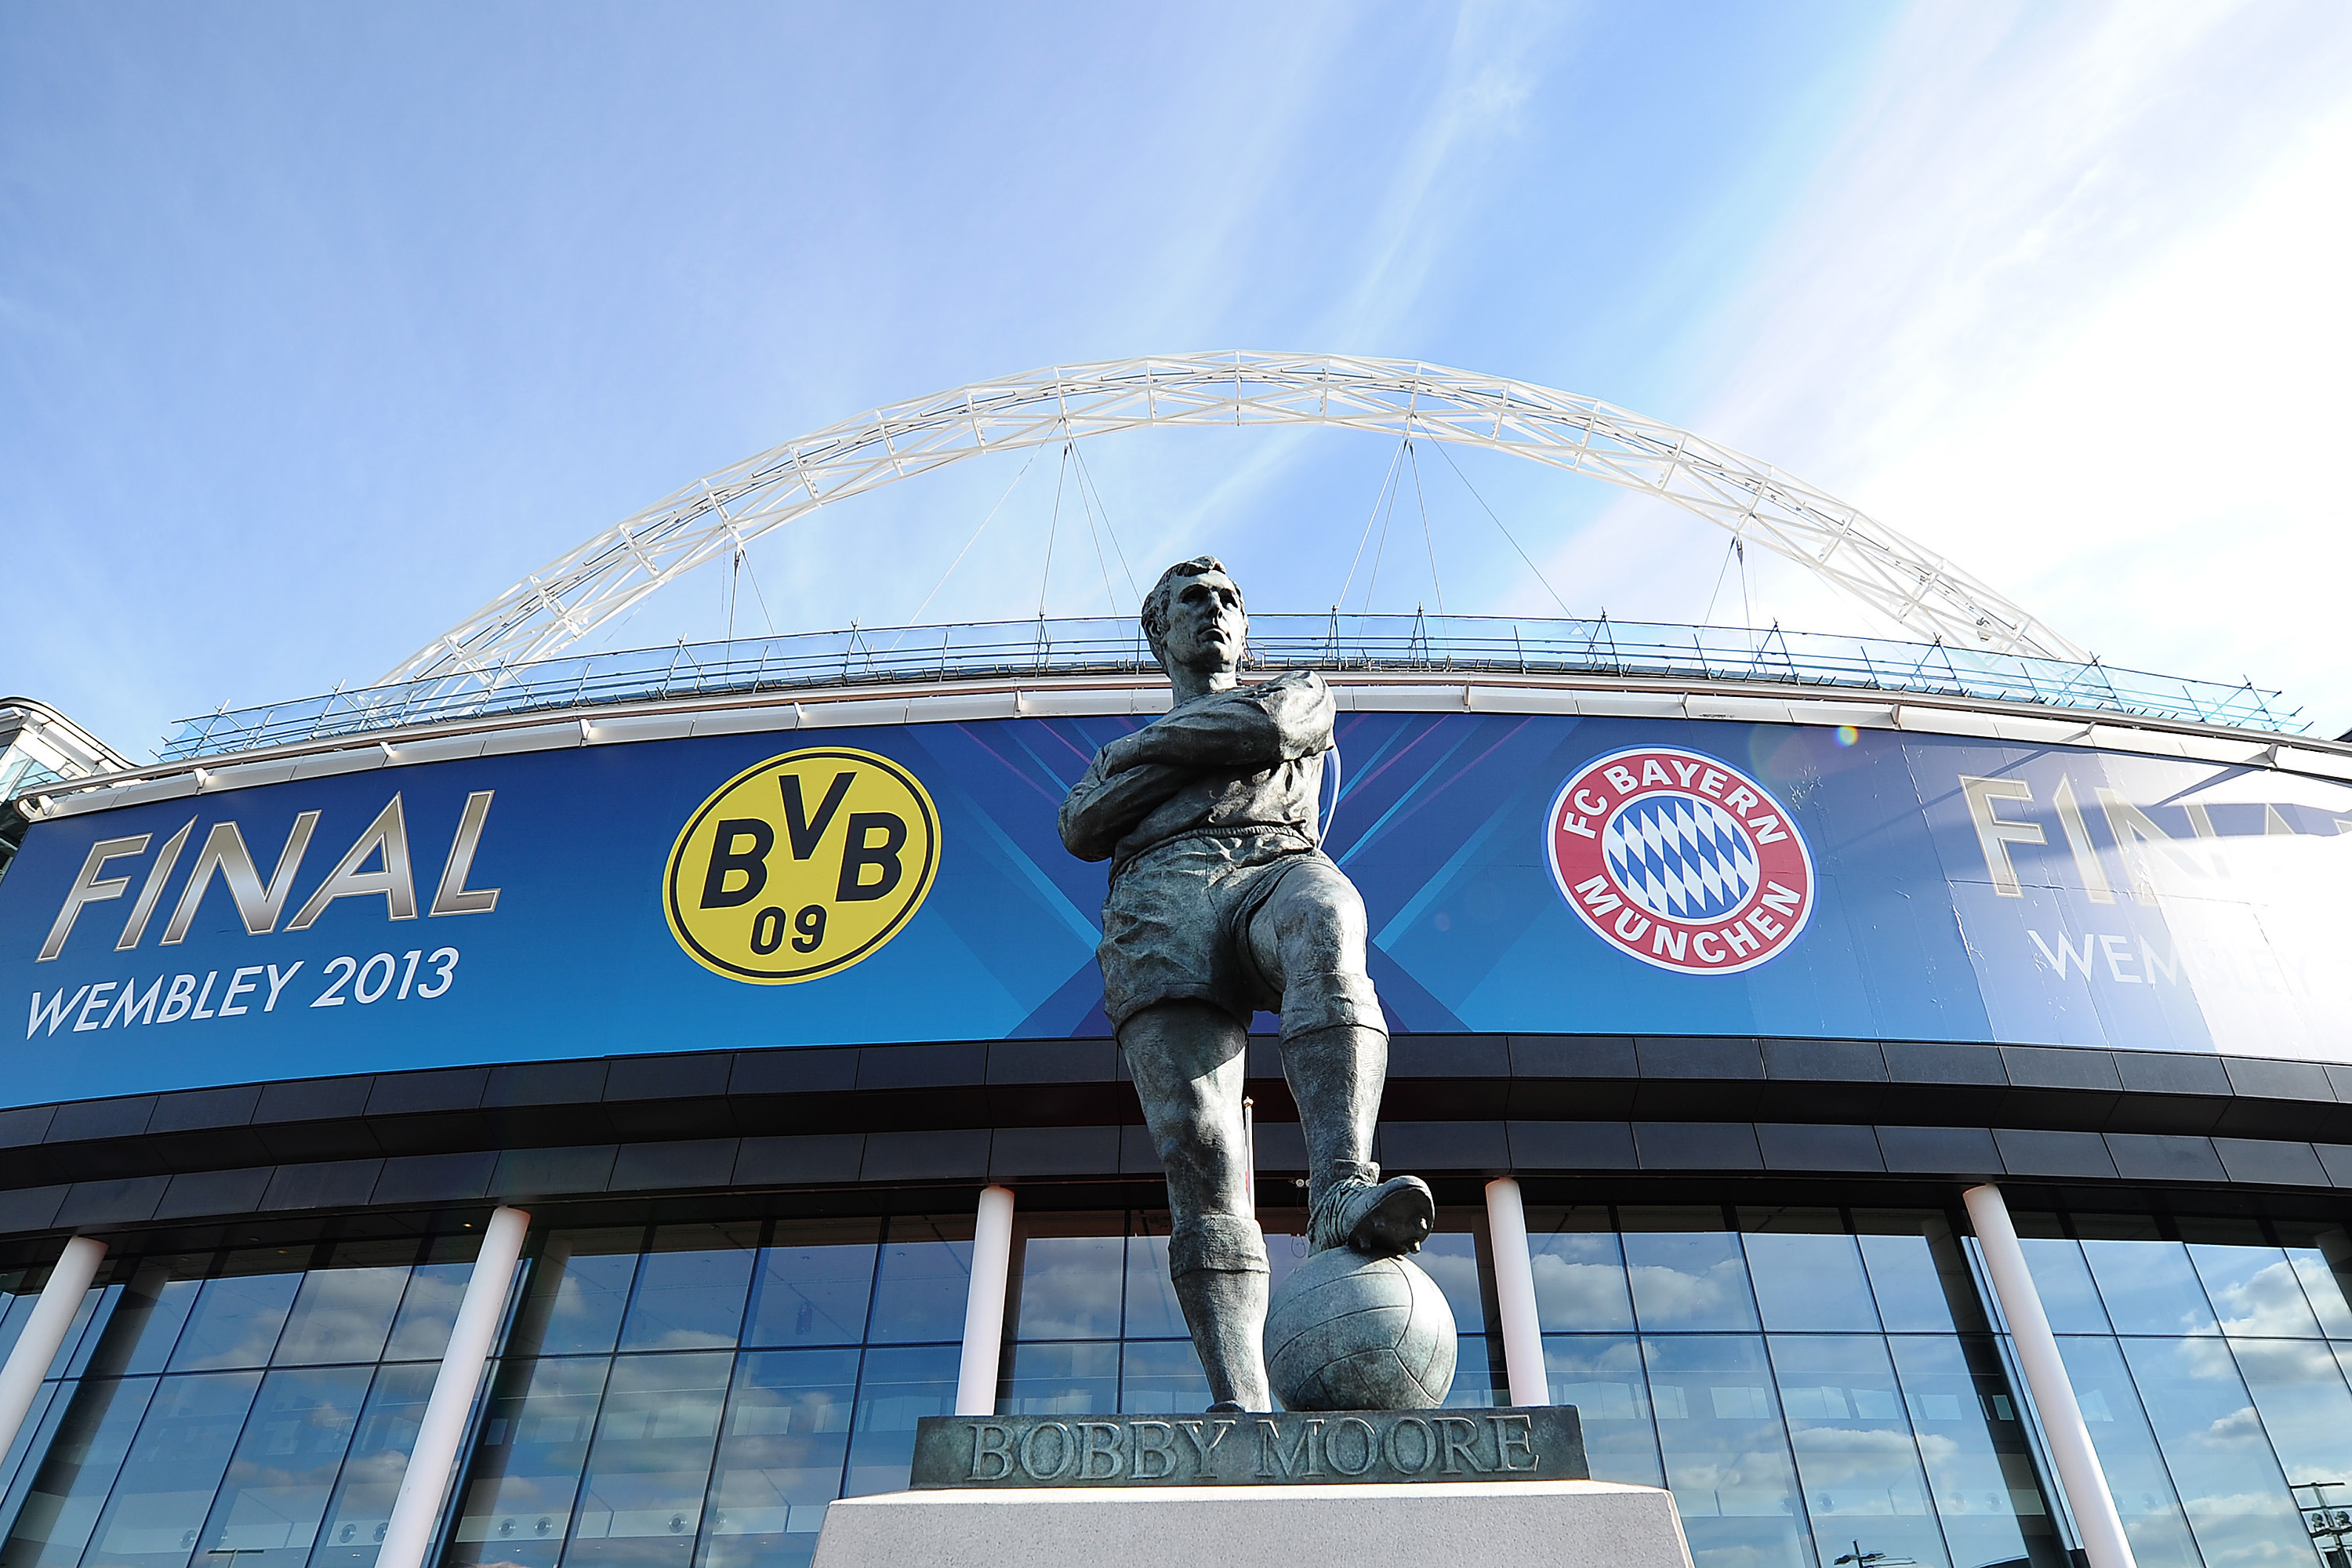 Wembley held the final in 2011 and 2013. Image: PA Images